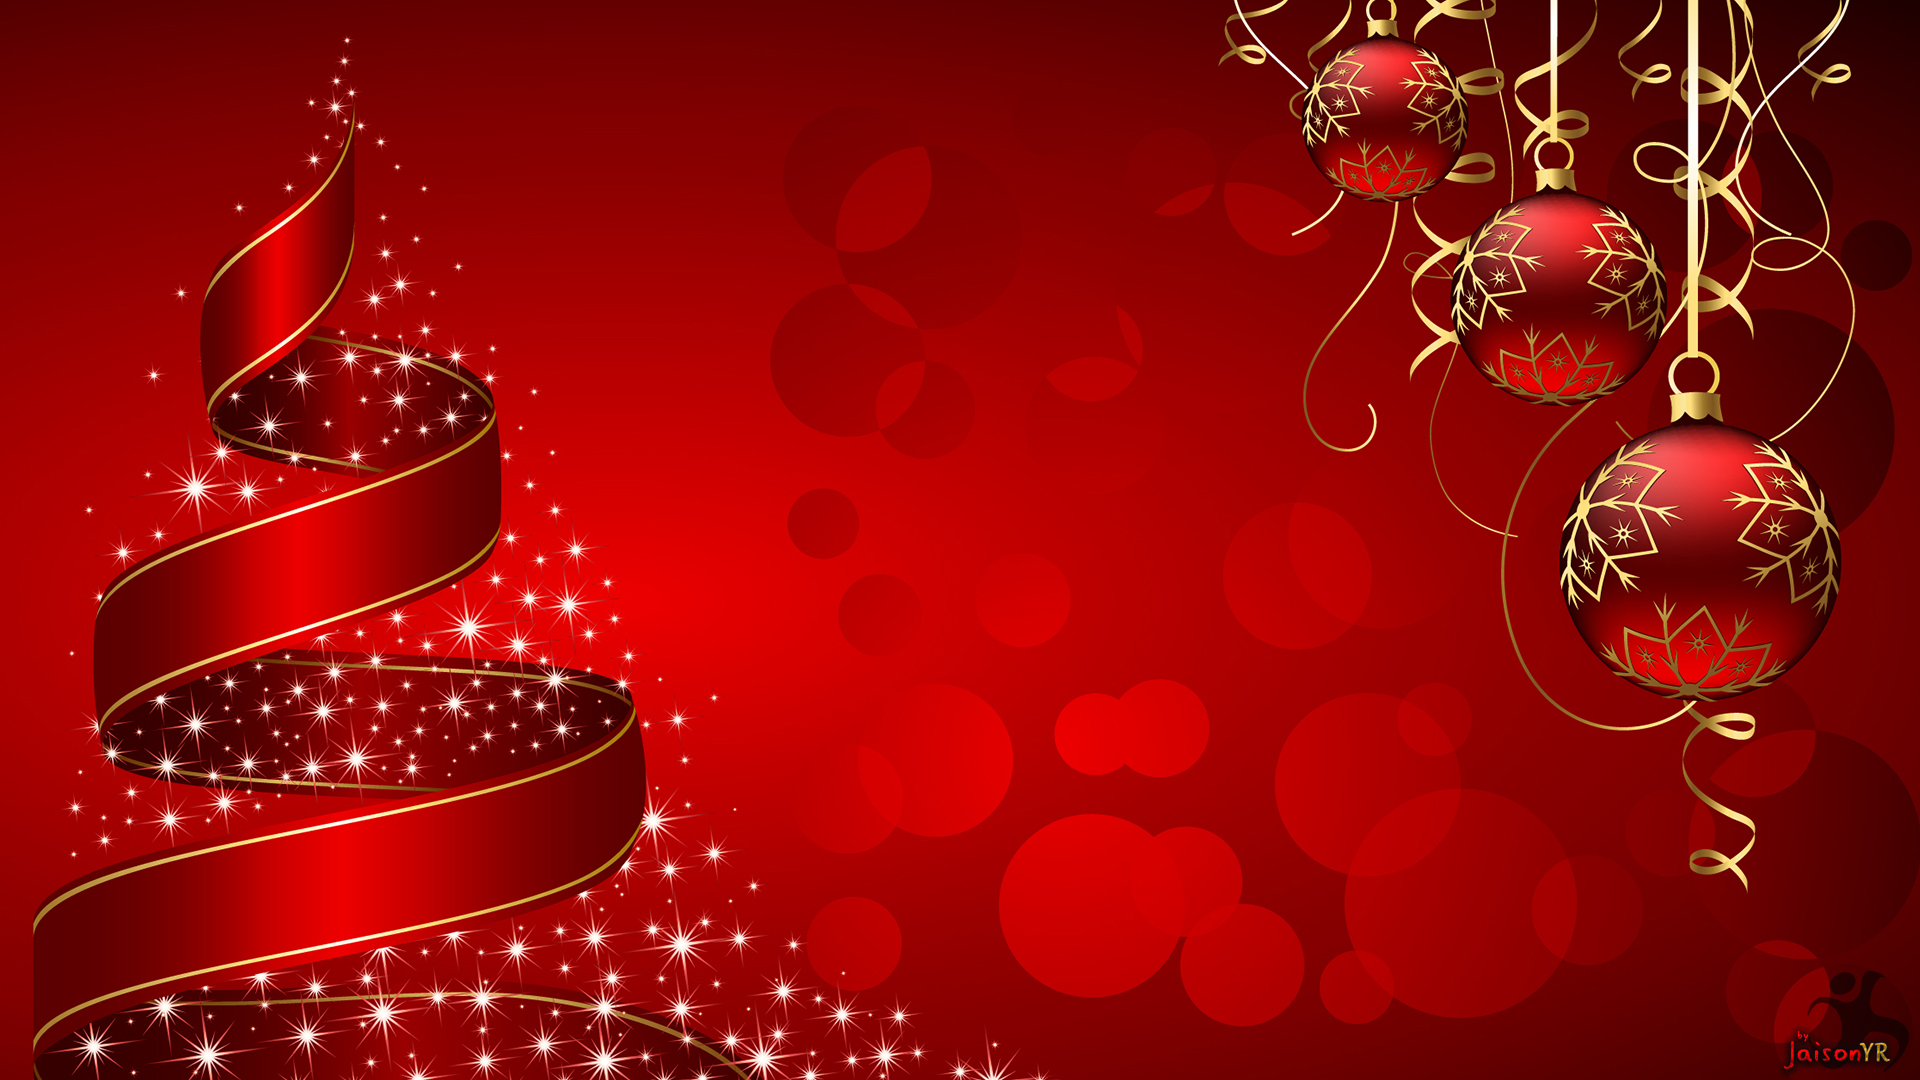 Download Merry Christmas HD Wallpapers 6038 Full Size 1920x1080